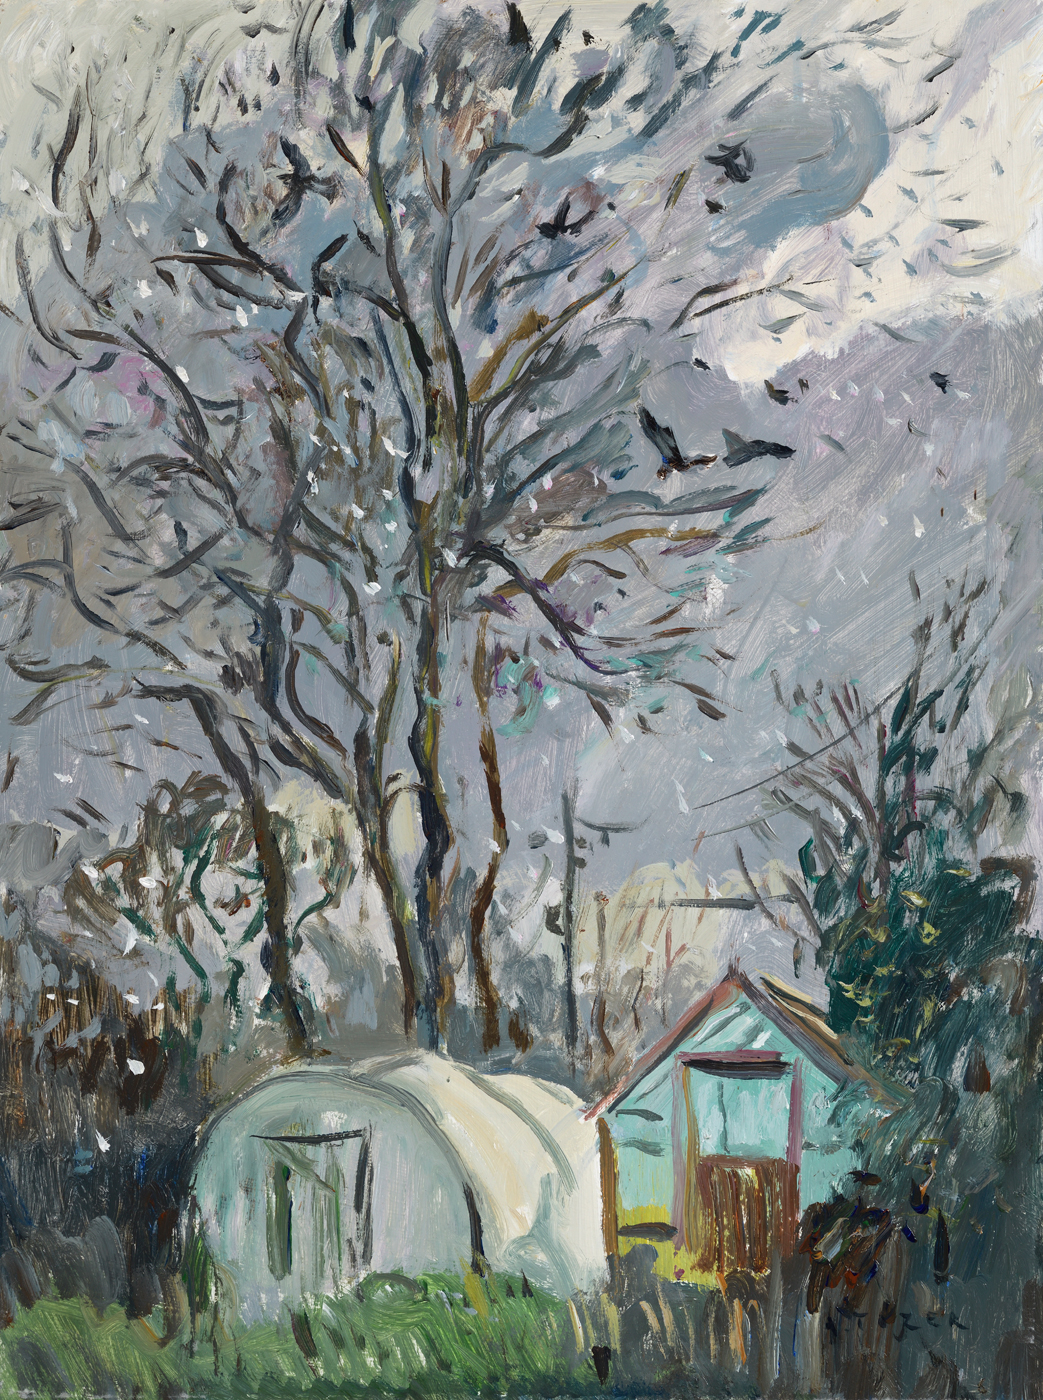 A Winter Scene with rooks and sleet by  Andrew Tozer